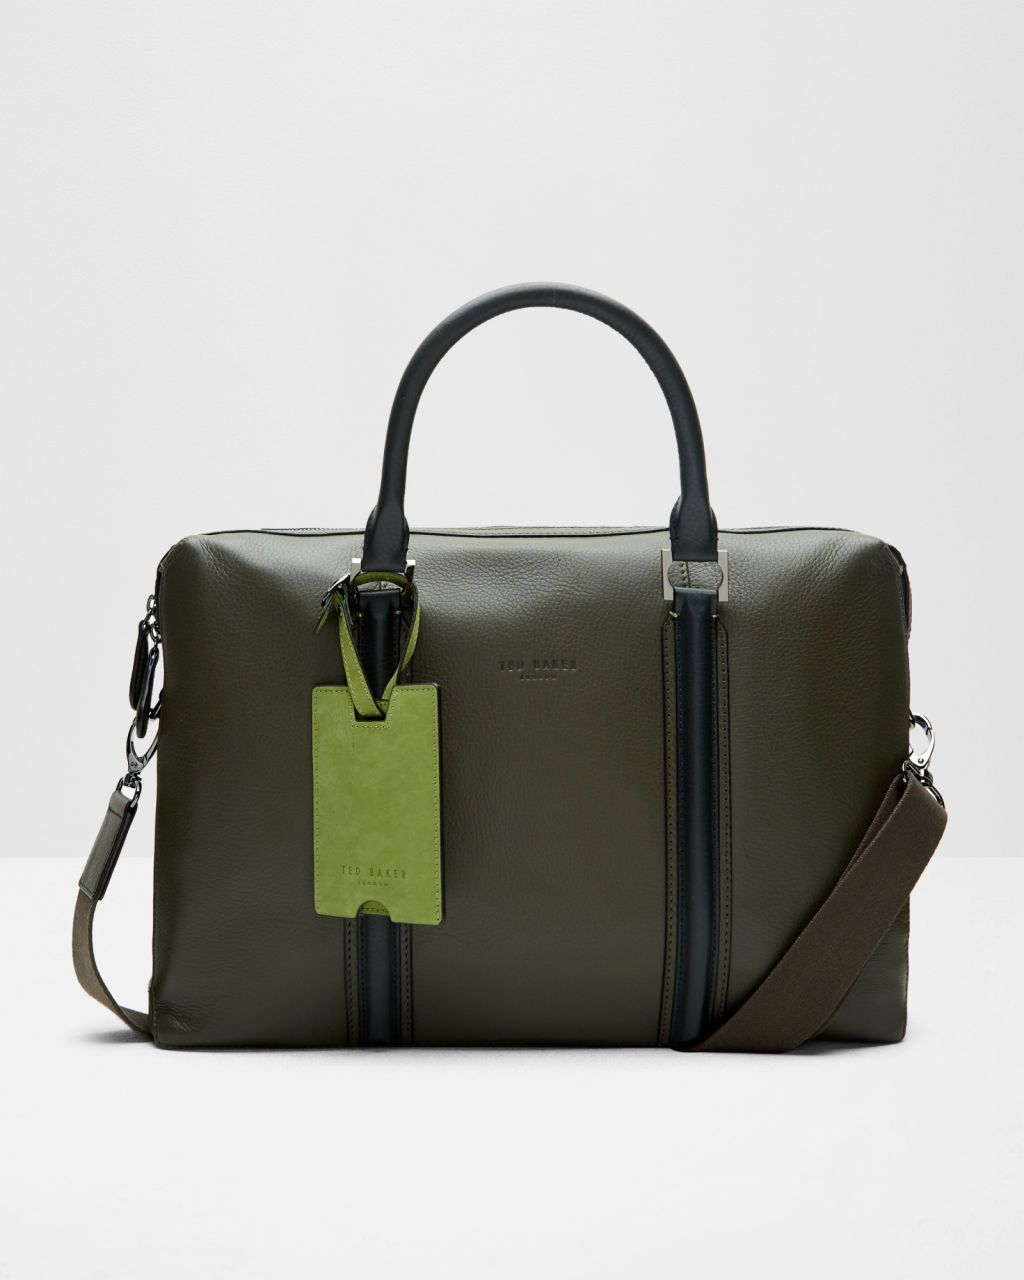 Green leather document bag by Ted Baker